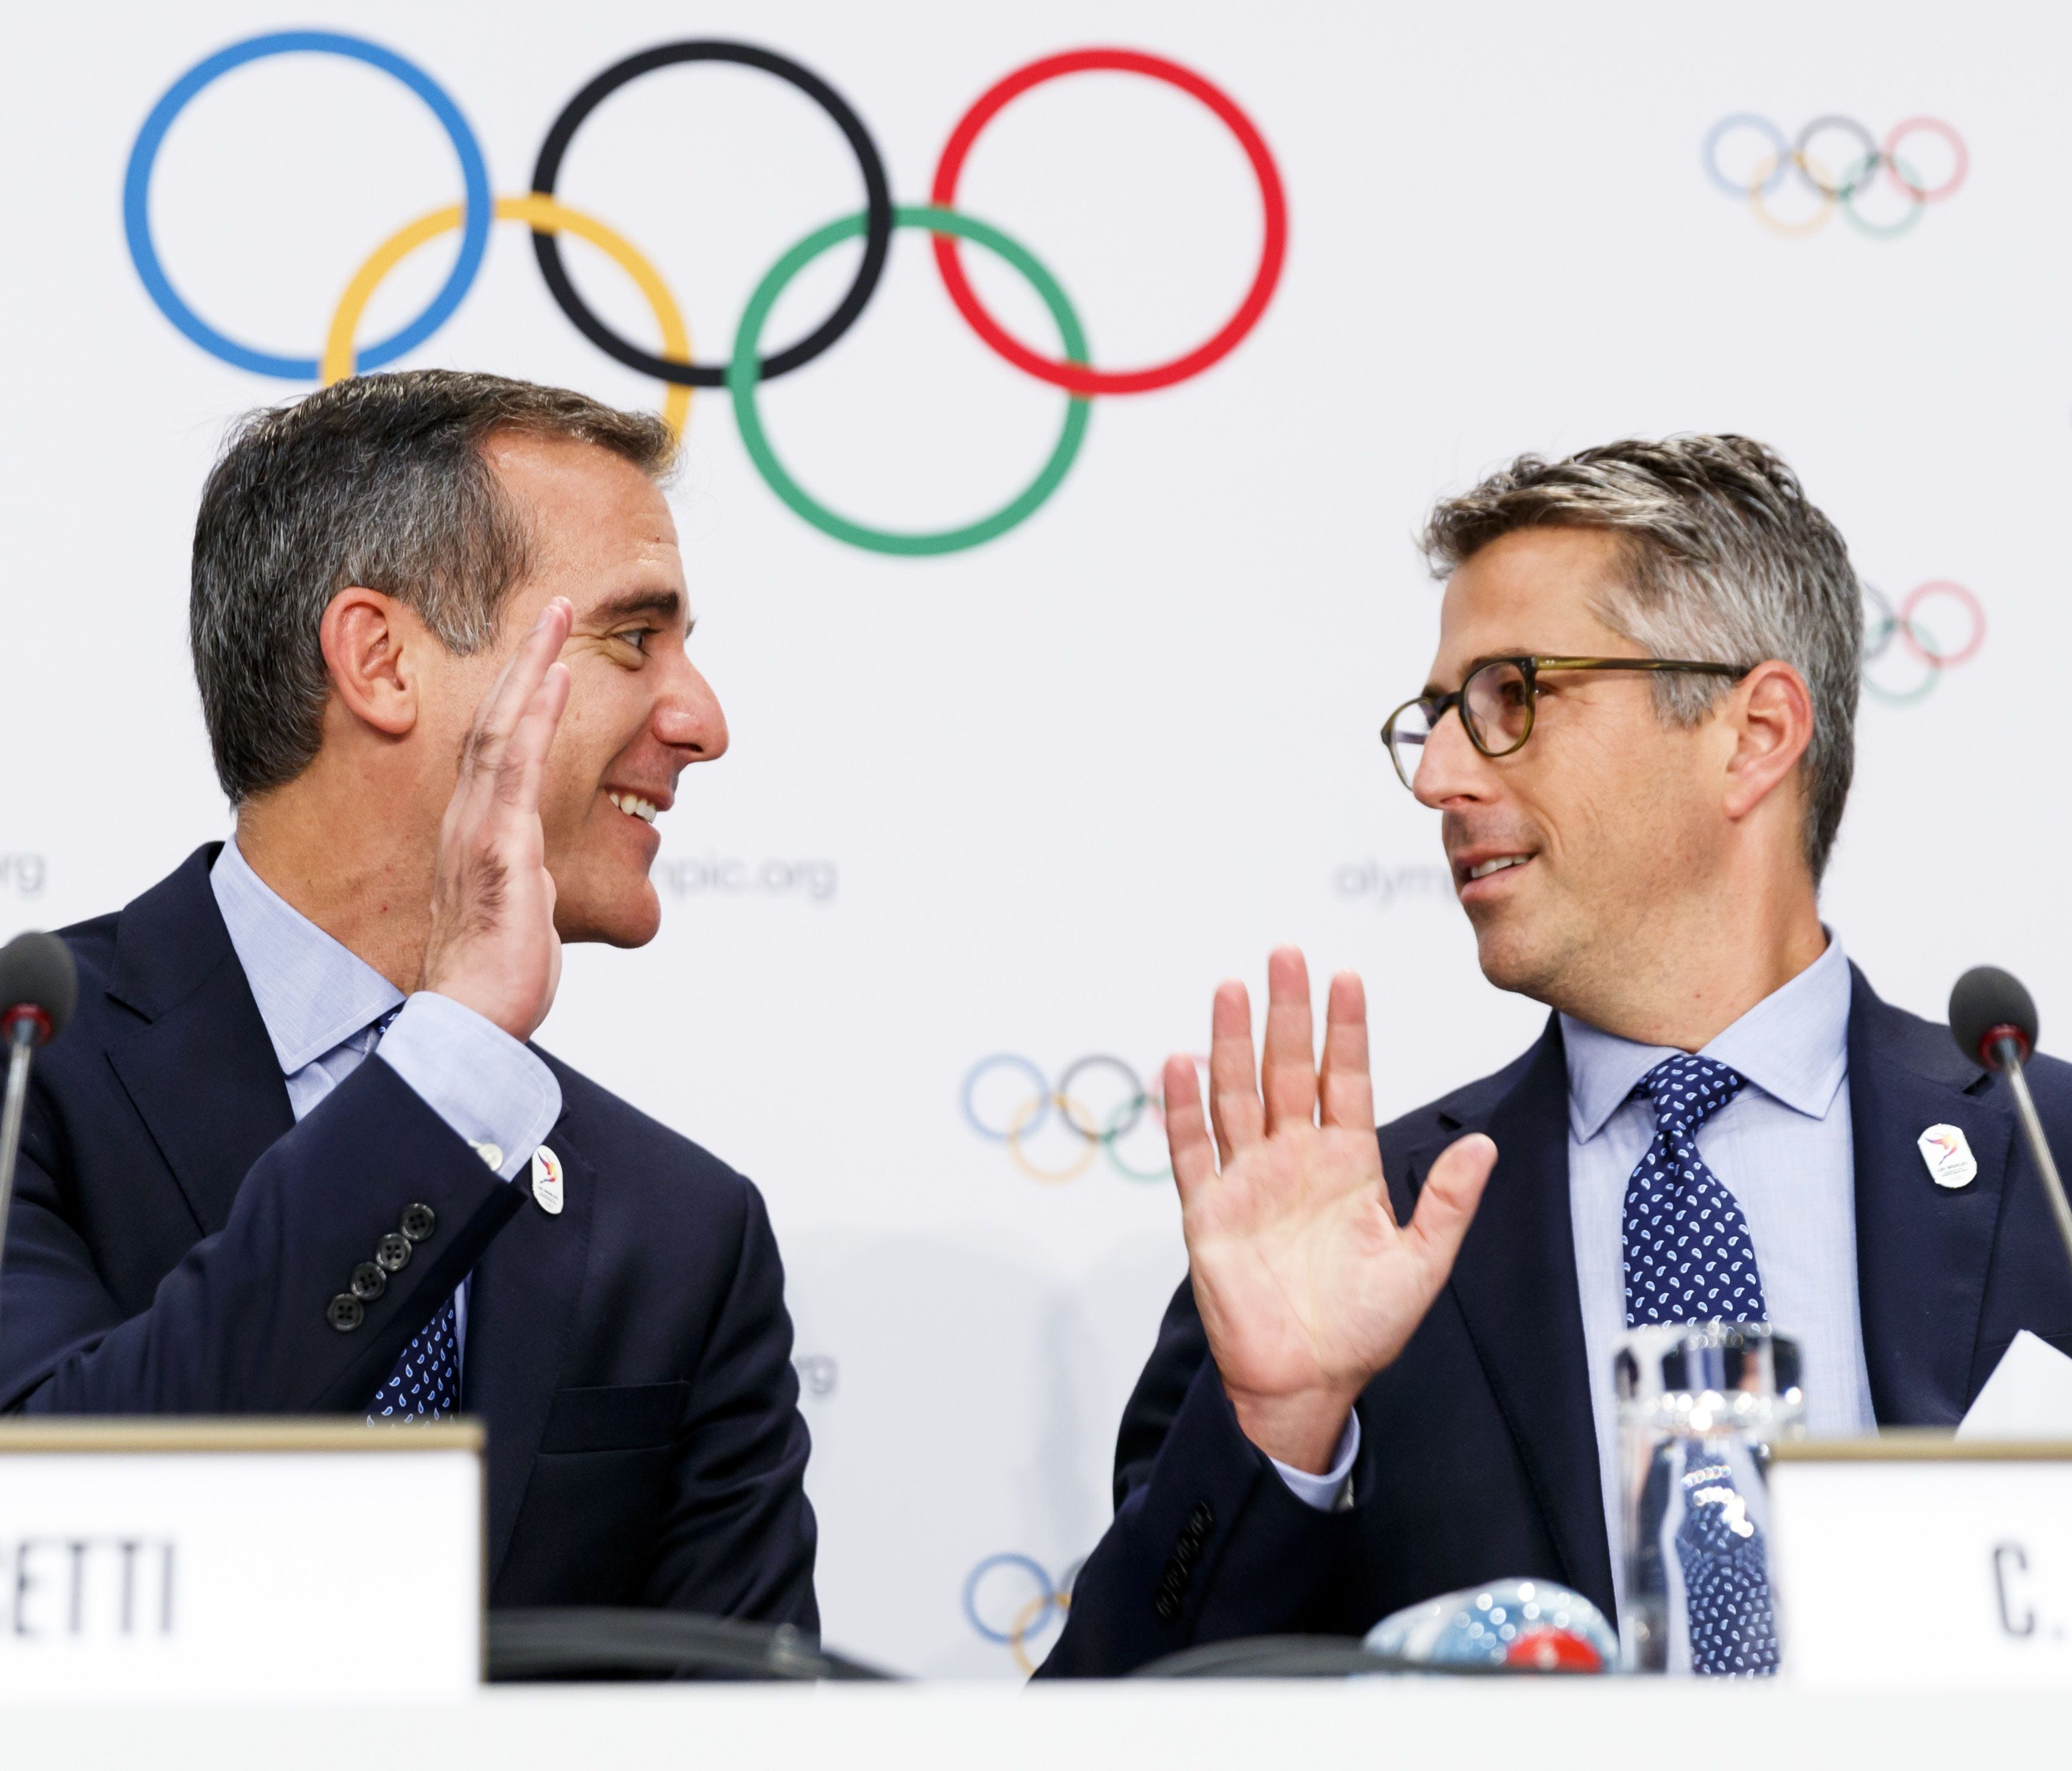 Eric Garcetti, mayor of Los Angeles, left, and Casey Wasserman, chairman of Los Angeles 2024, right, high five each other during a news conference after the presentation of Los Angeles 2024 Candidate City Briefing for International Olympic Committee